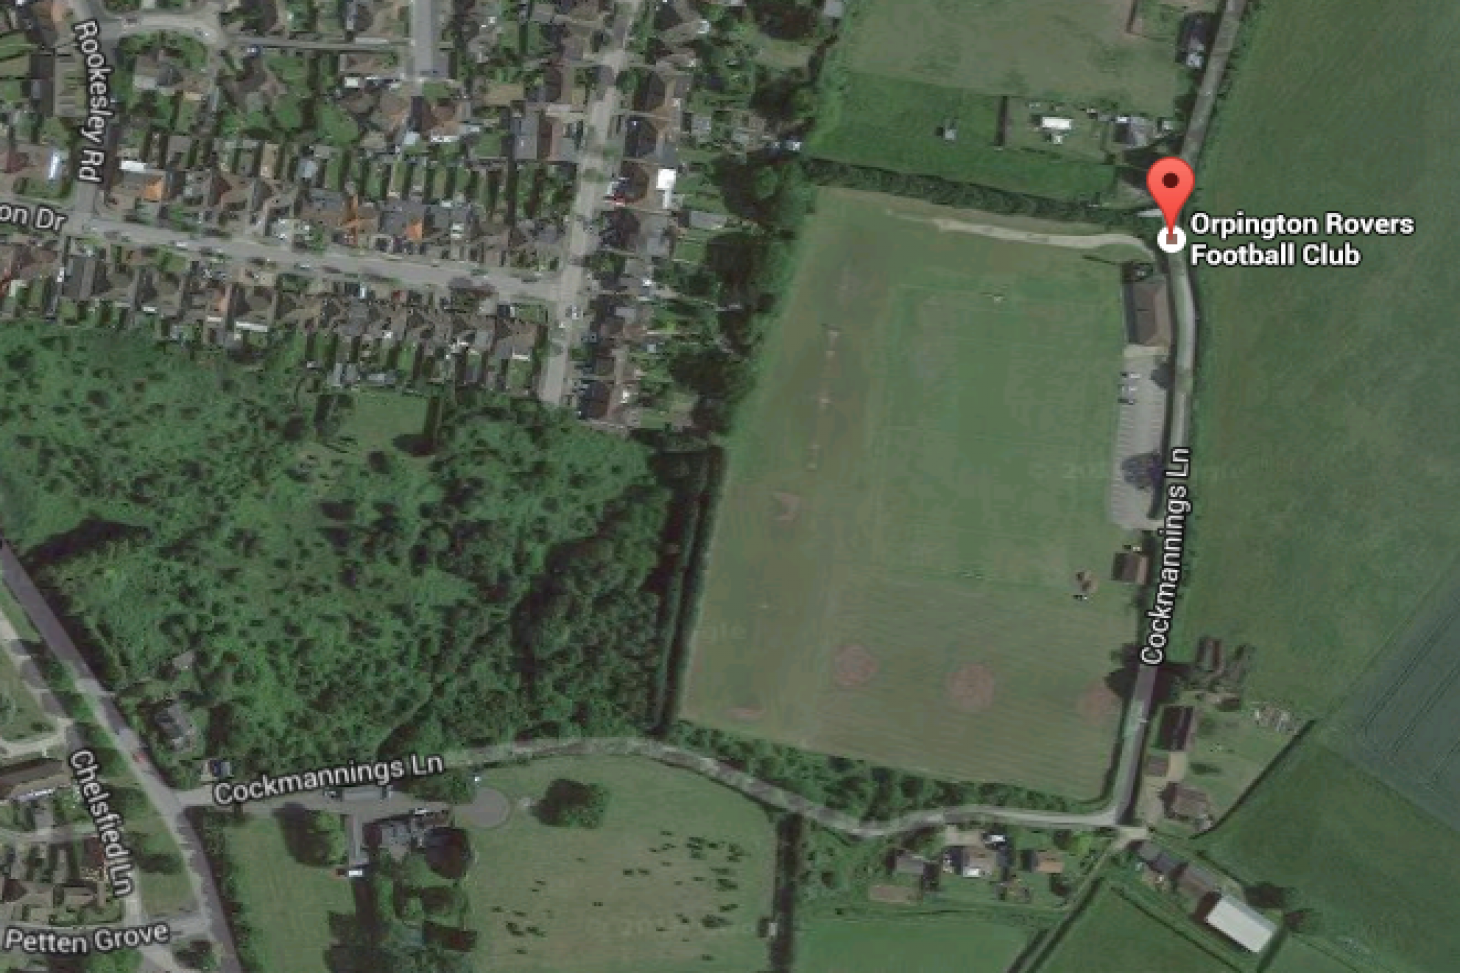 Orpington Rovers Football Club 11 a side | Grass football pitch